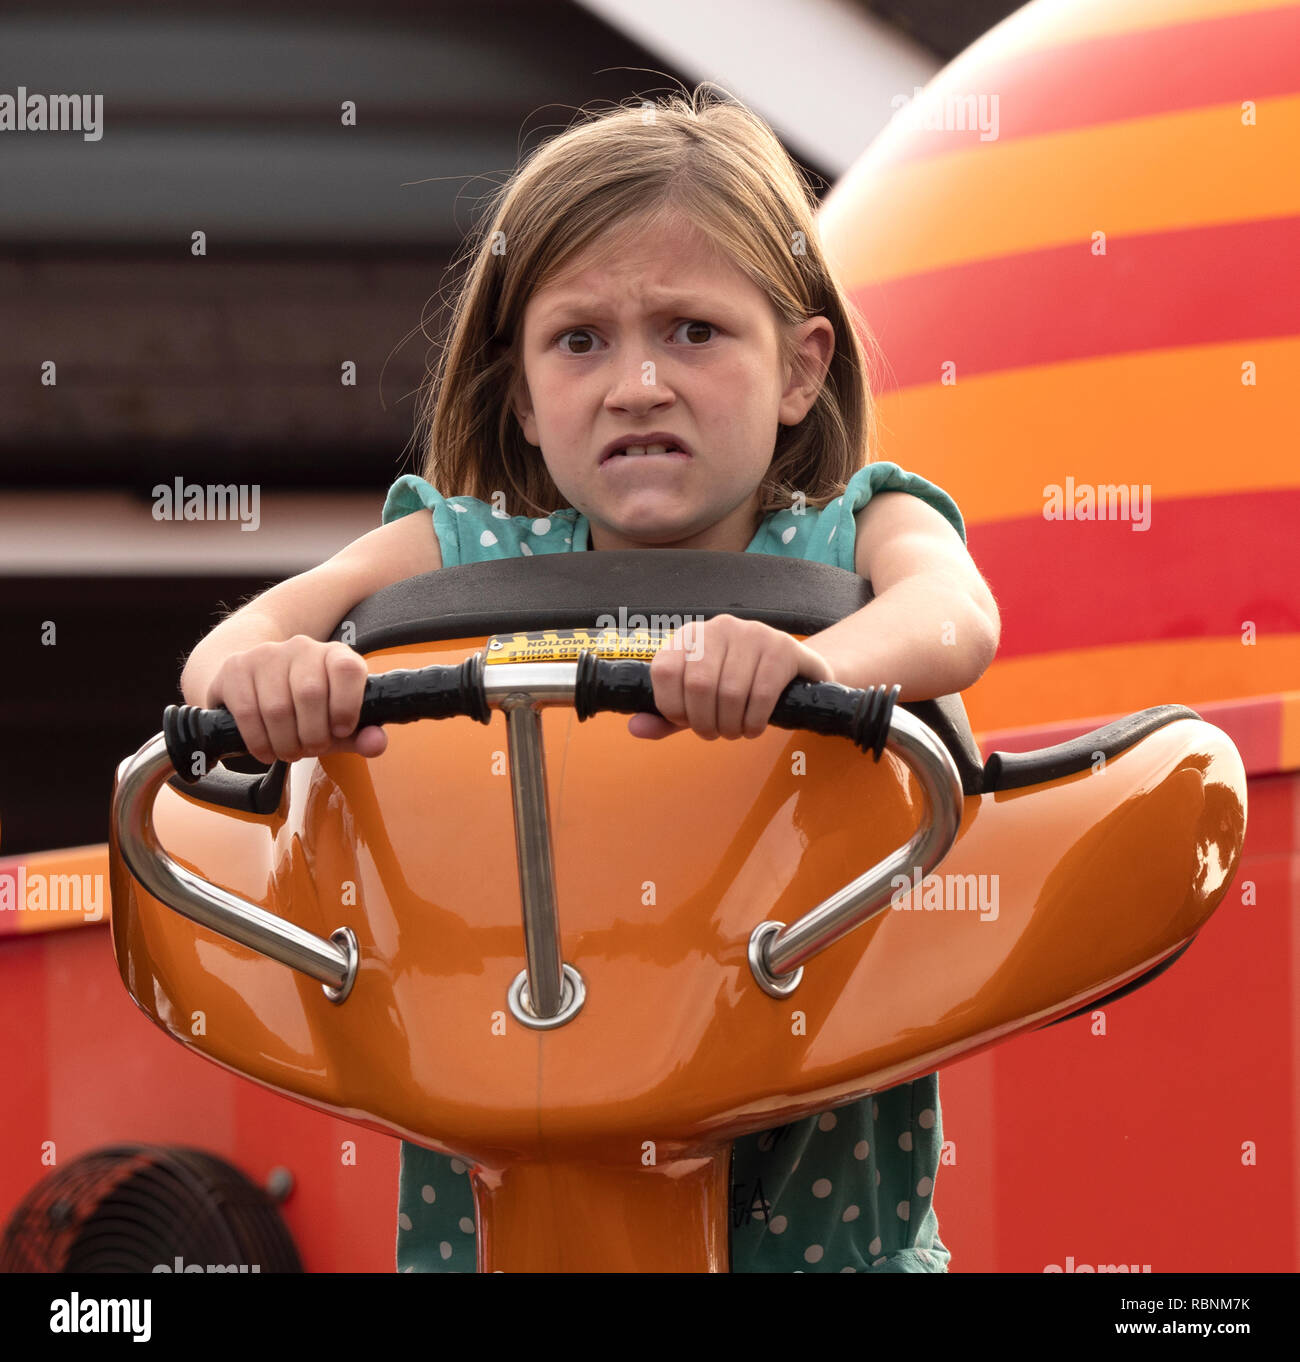 7 year old girl worried about pleasure park ride. - Stock Image